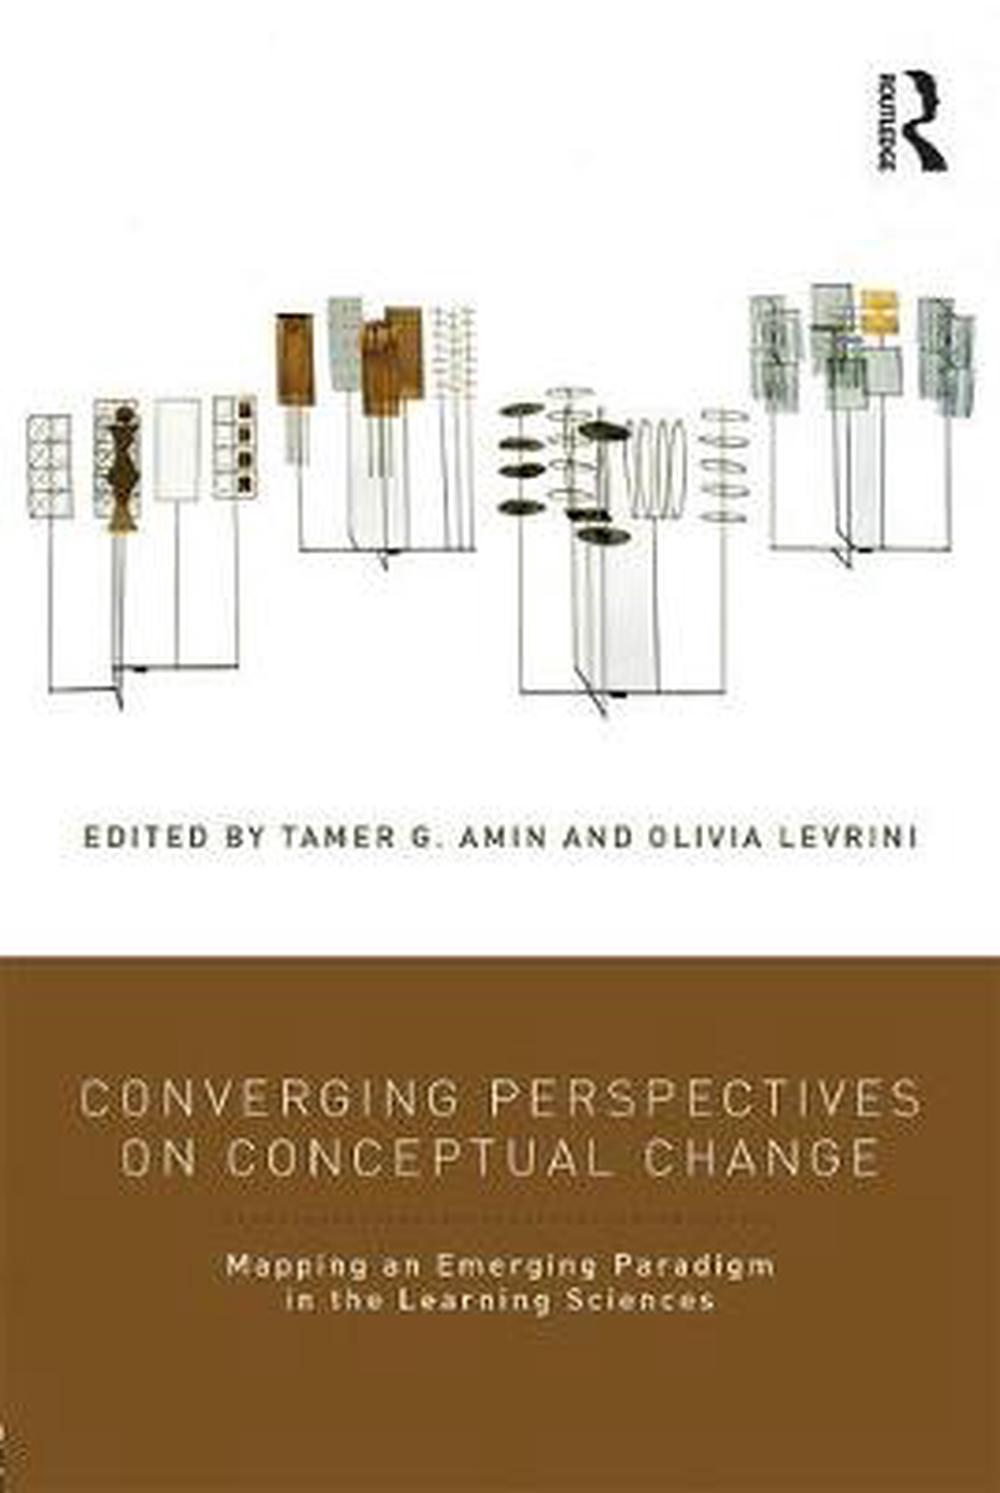 Converging-Perspectives-on-Conceptual-Change-Mapping-an-Emerging-Paradigm-in-th